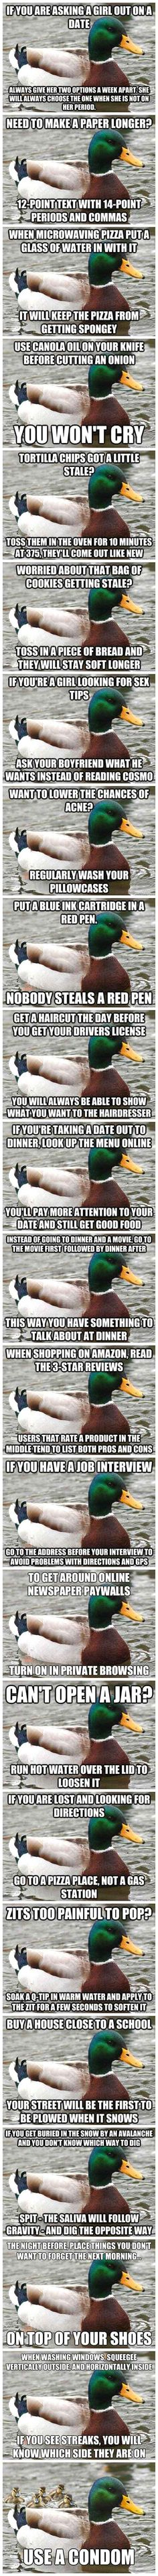 awesome duck wisdom